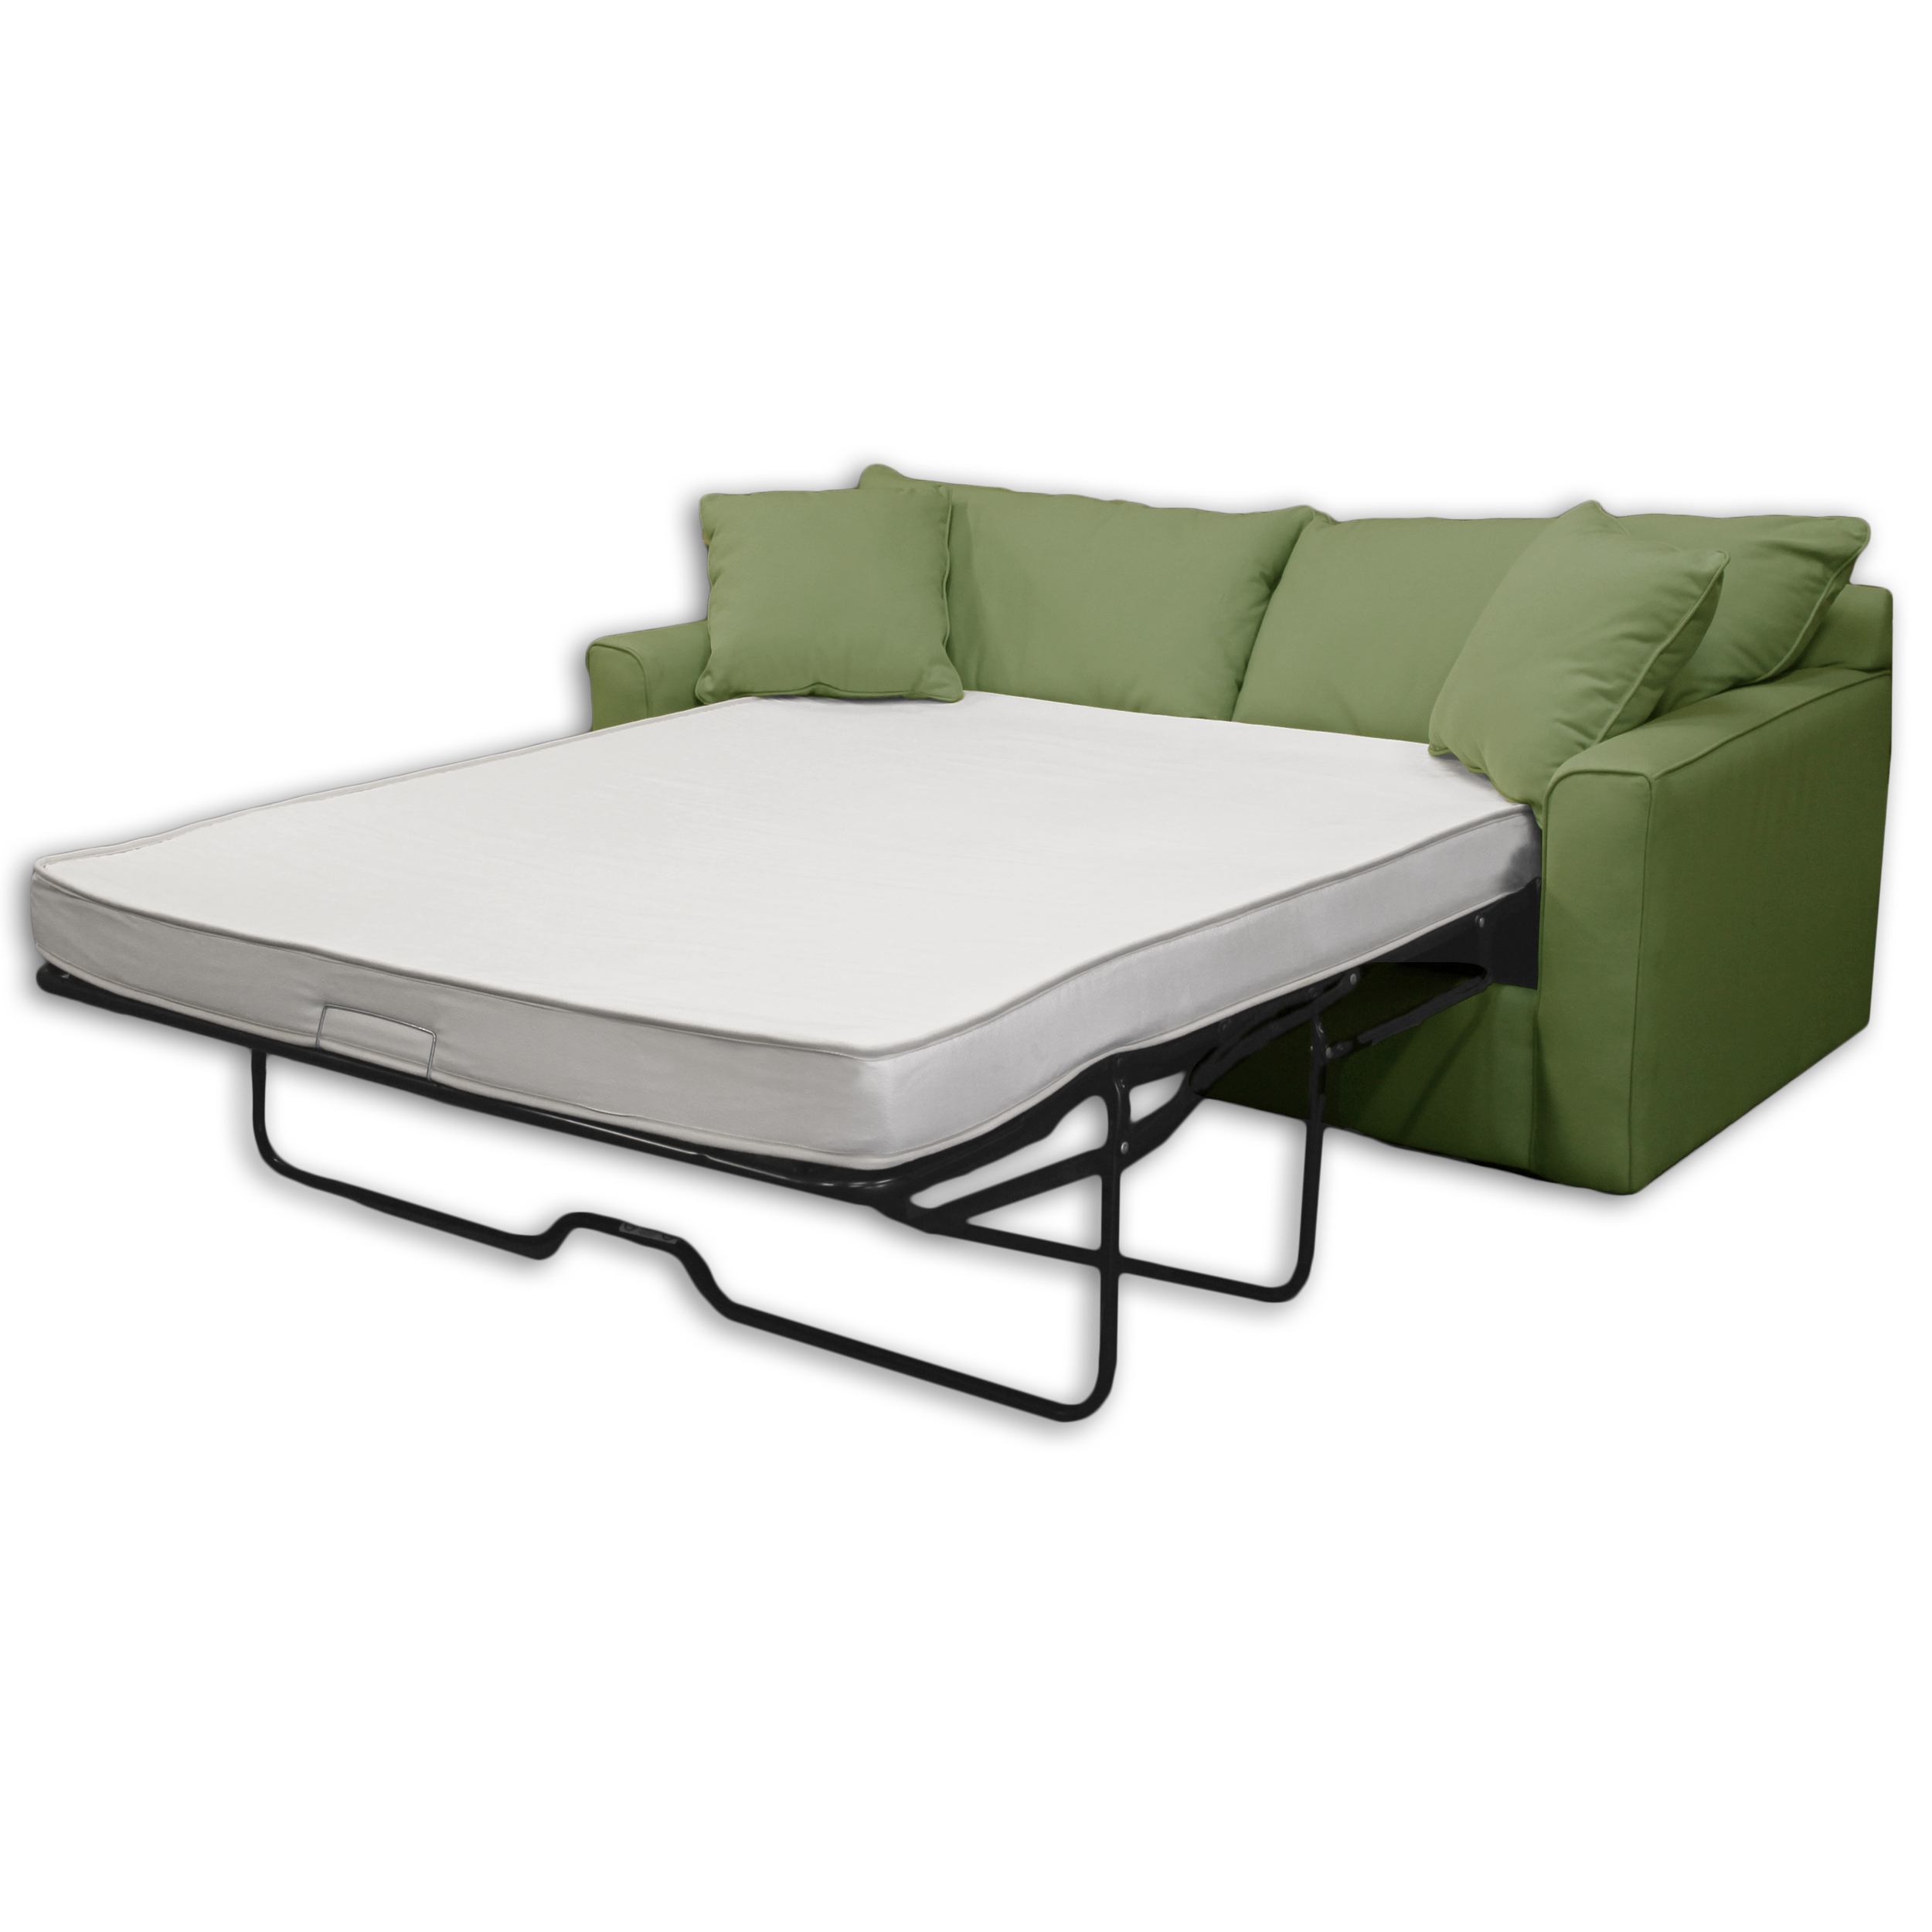 awesome memory foam. Bedroom clipart couch